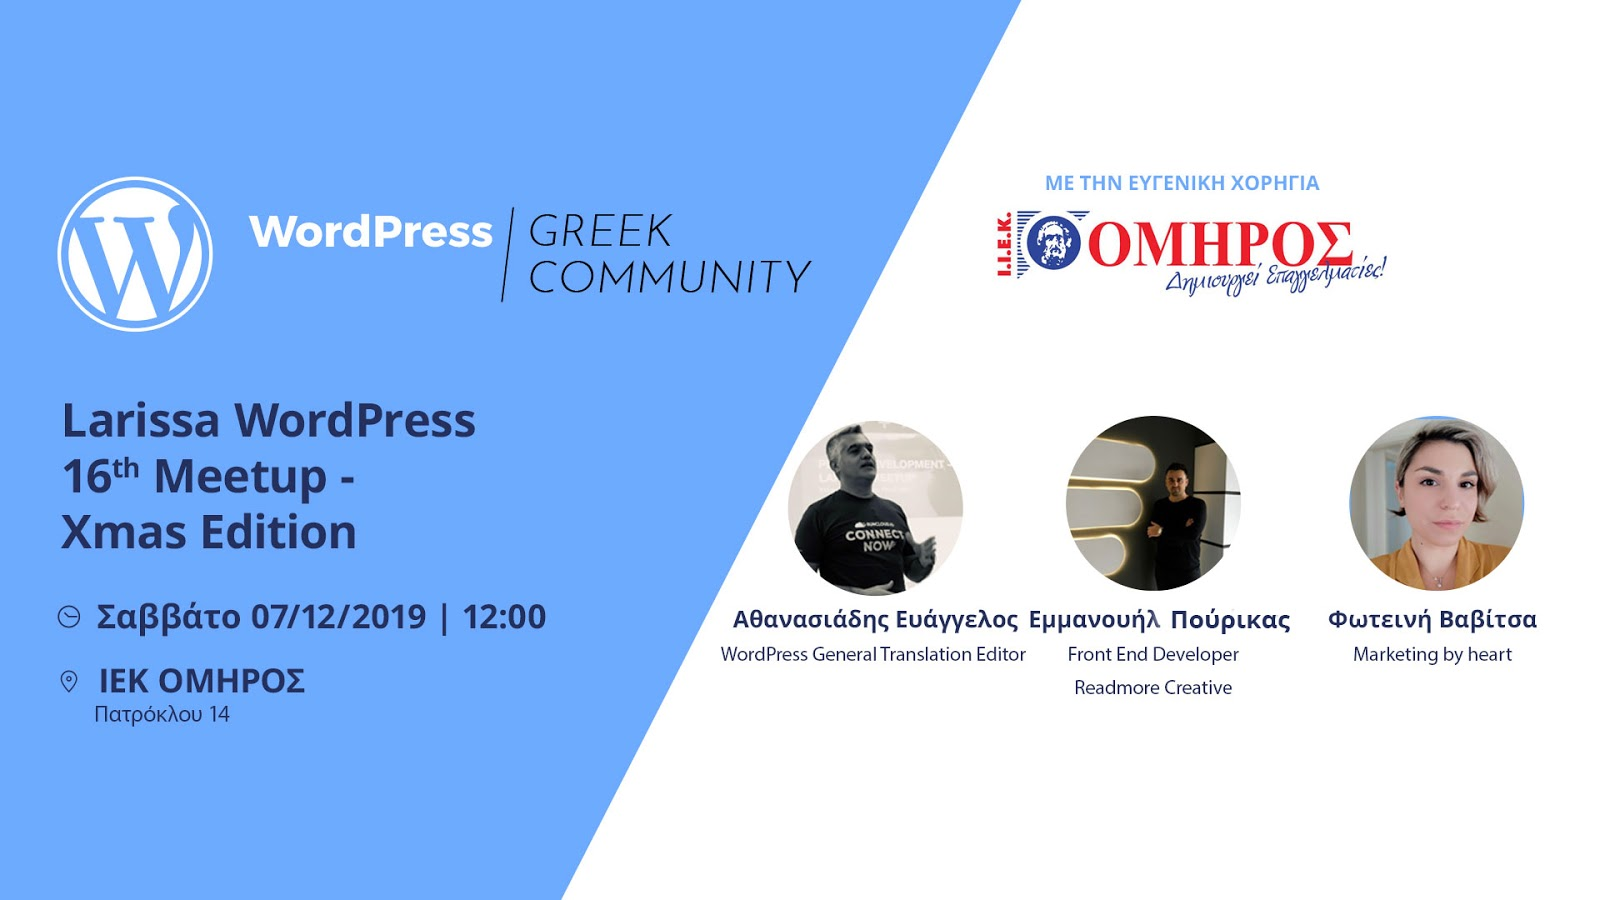 WordPress Larissa Meetup - Xmas 2019 edition στη Λάρισα